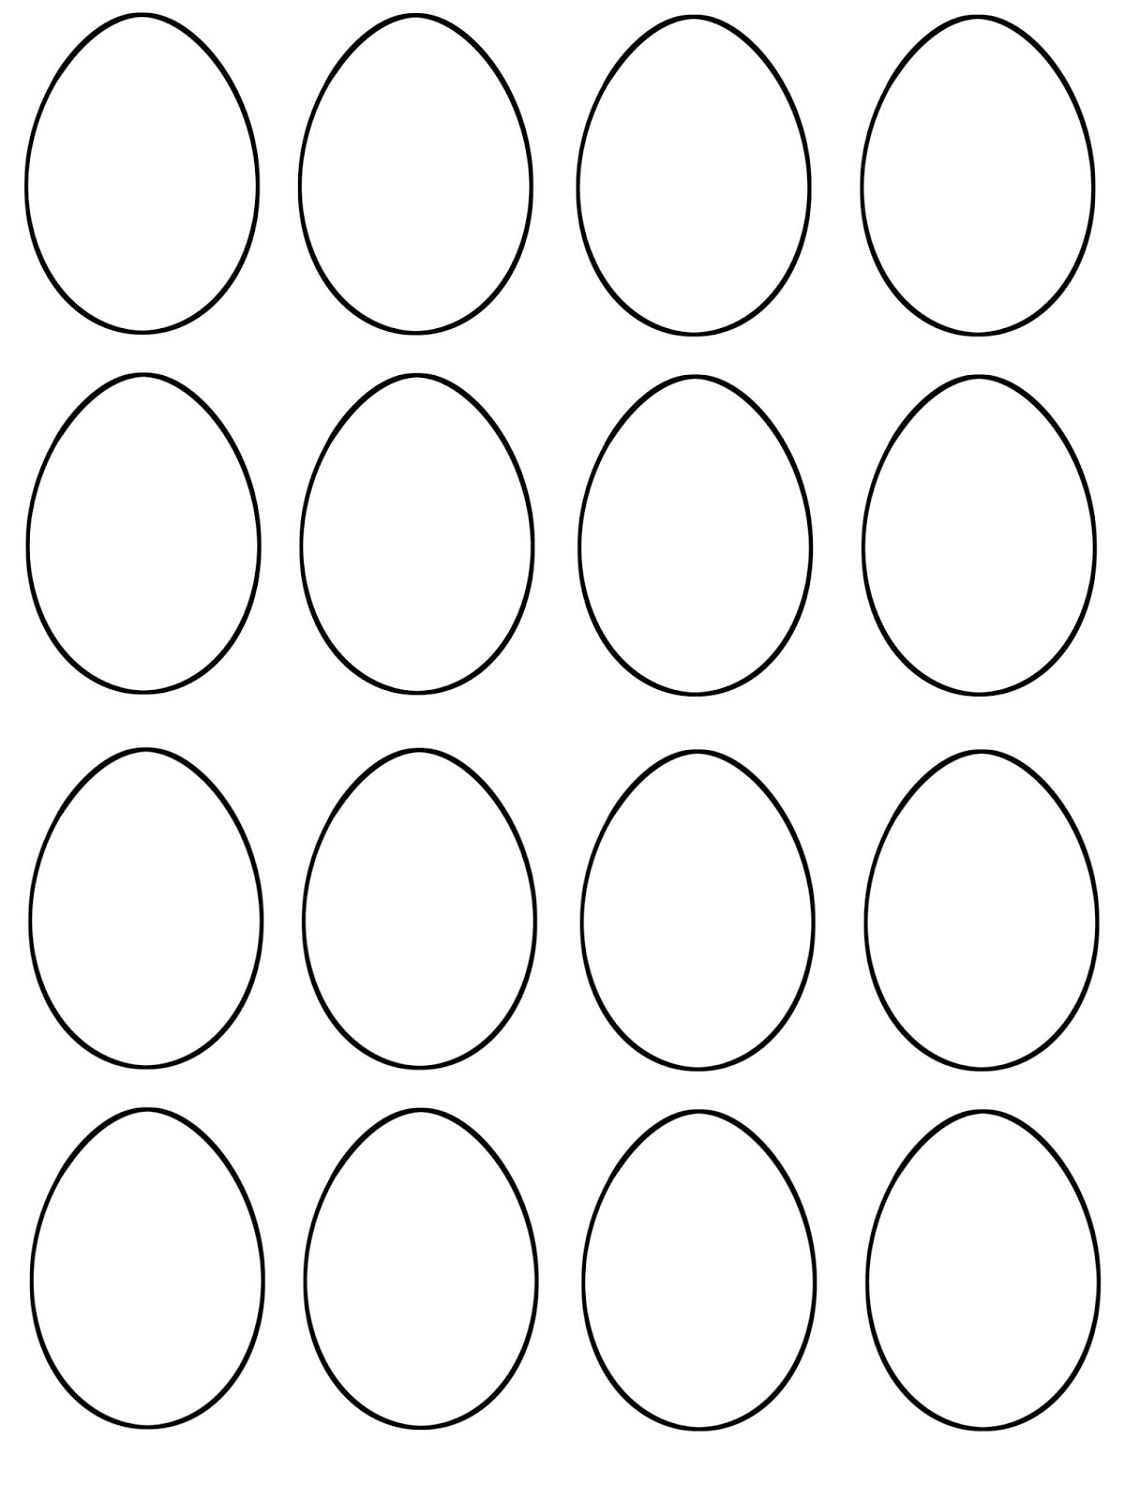 Color Blank Easter Egg Template